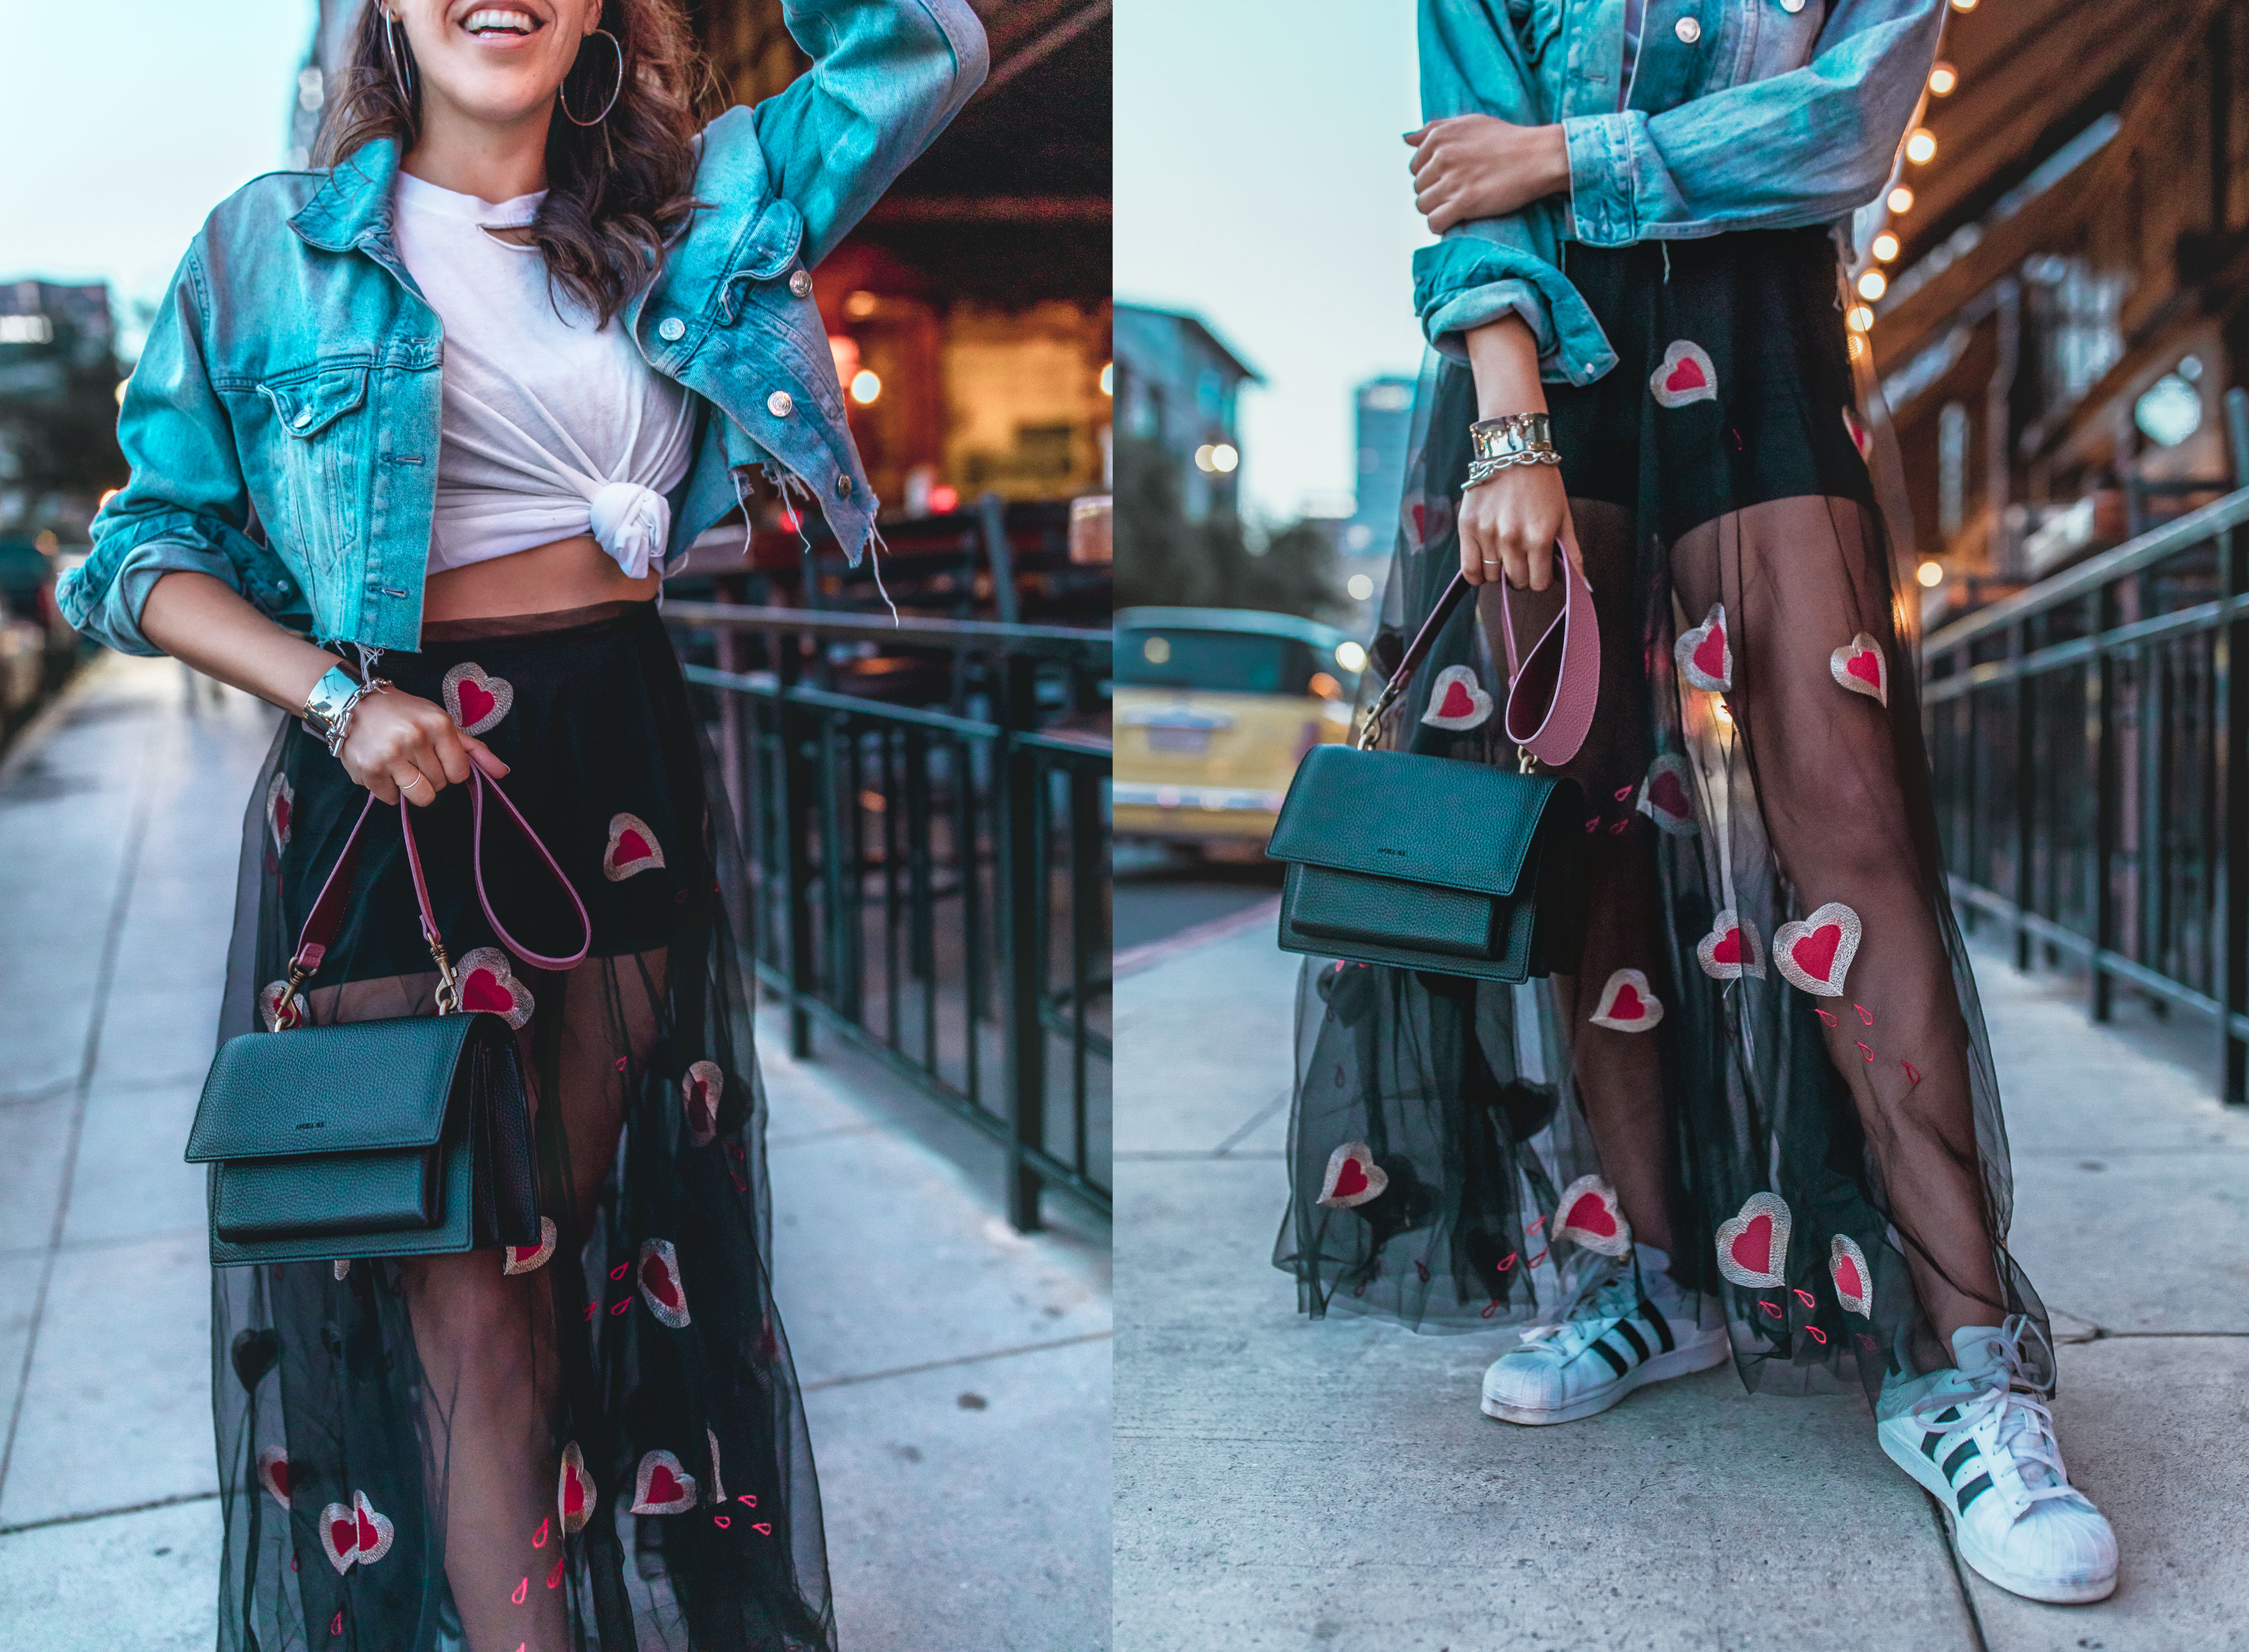 Transitional sheer + Denim outfit in Downtown San Diego